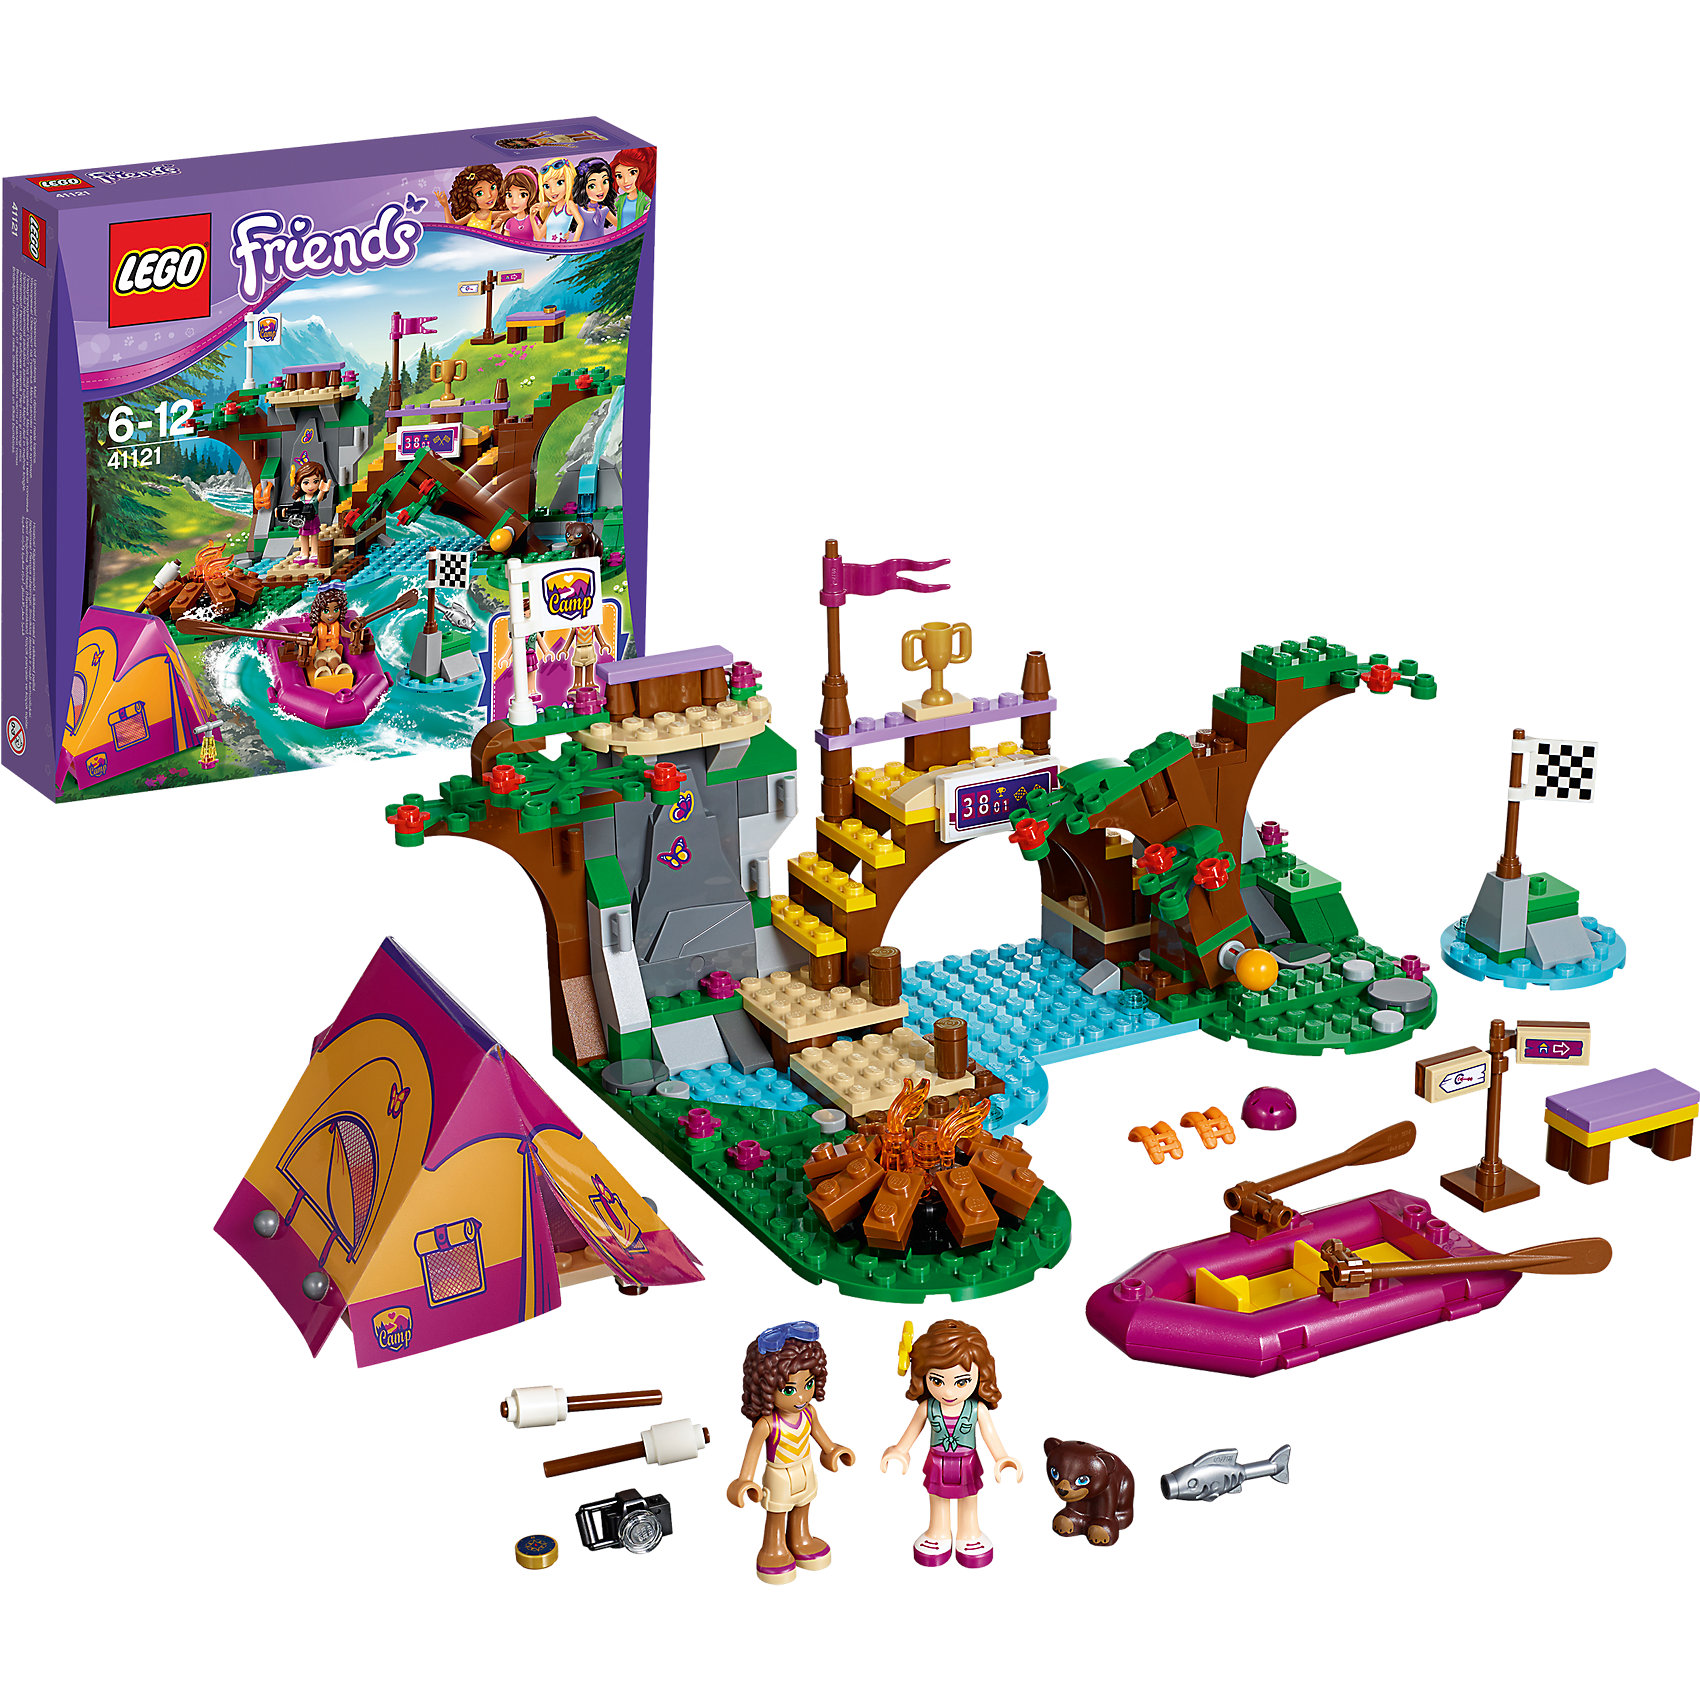 LEGO LEGO Friends 41121: Спортивный лагерь: сплав по реке